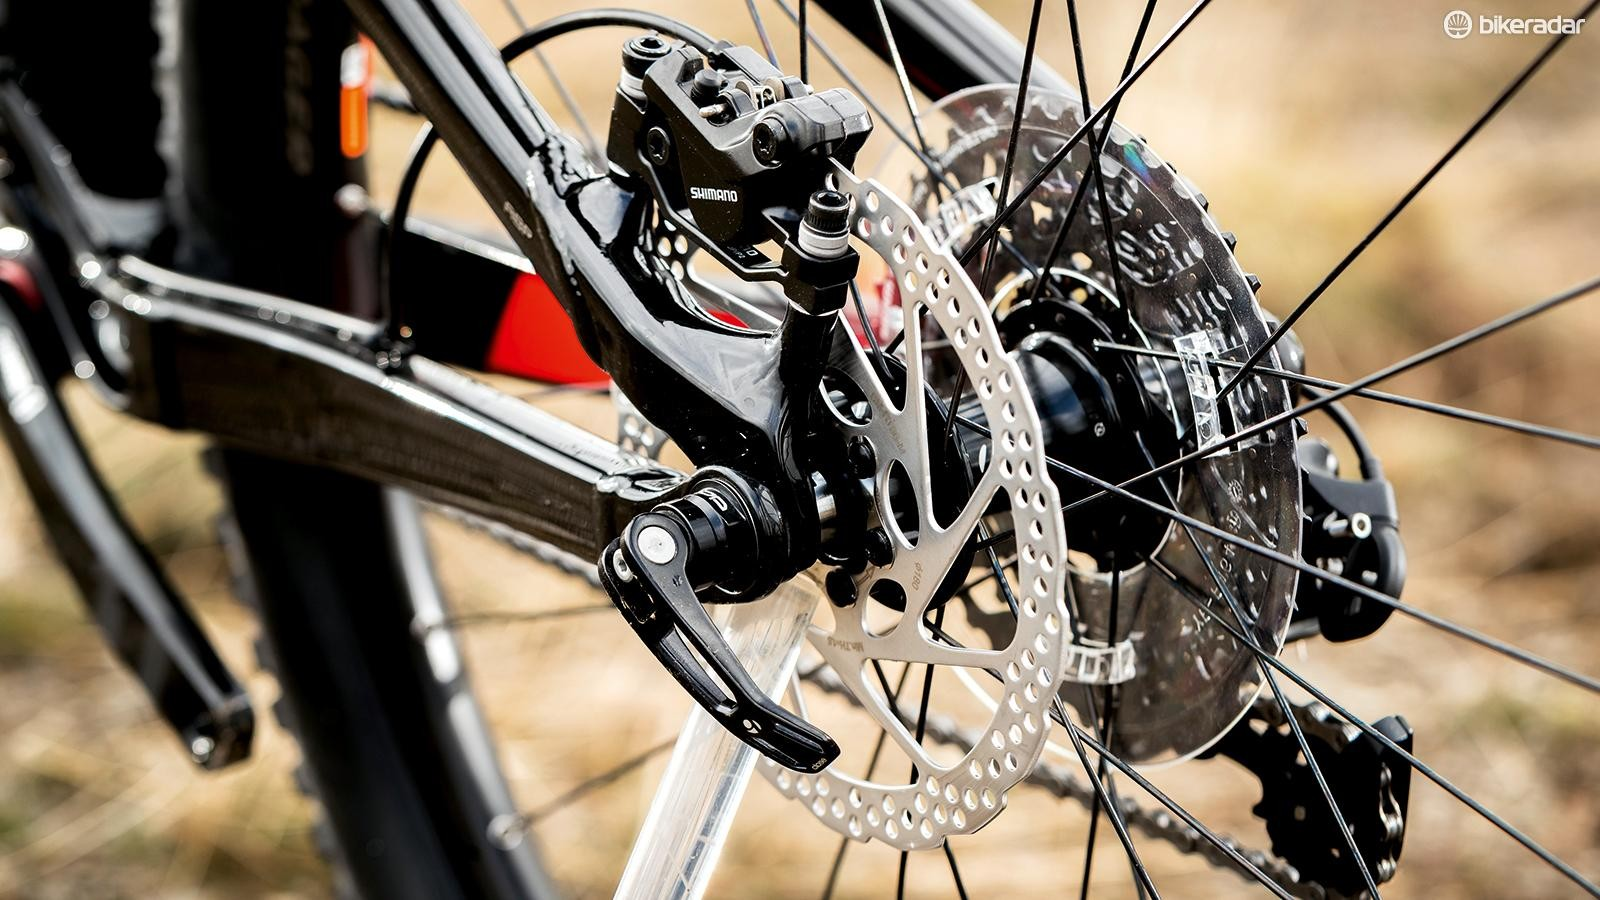 Boost spacing lets you add wider tyres or a bigger chainring